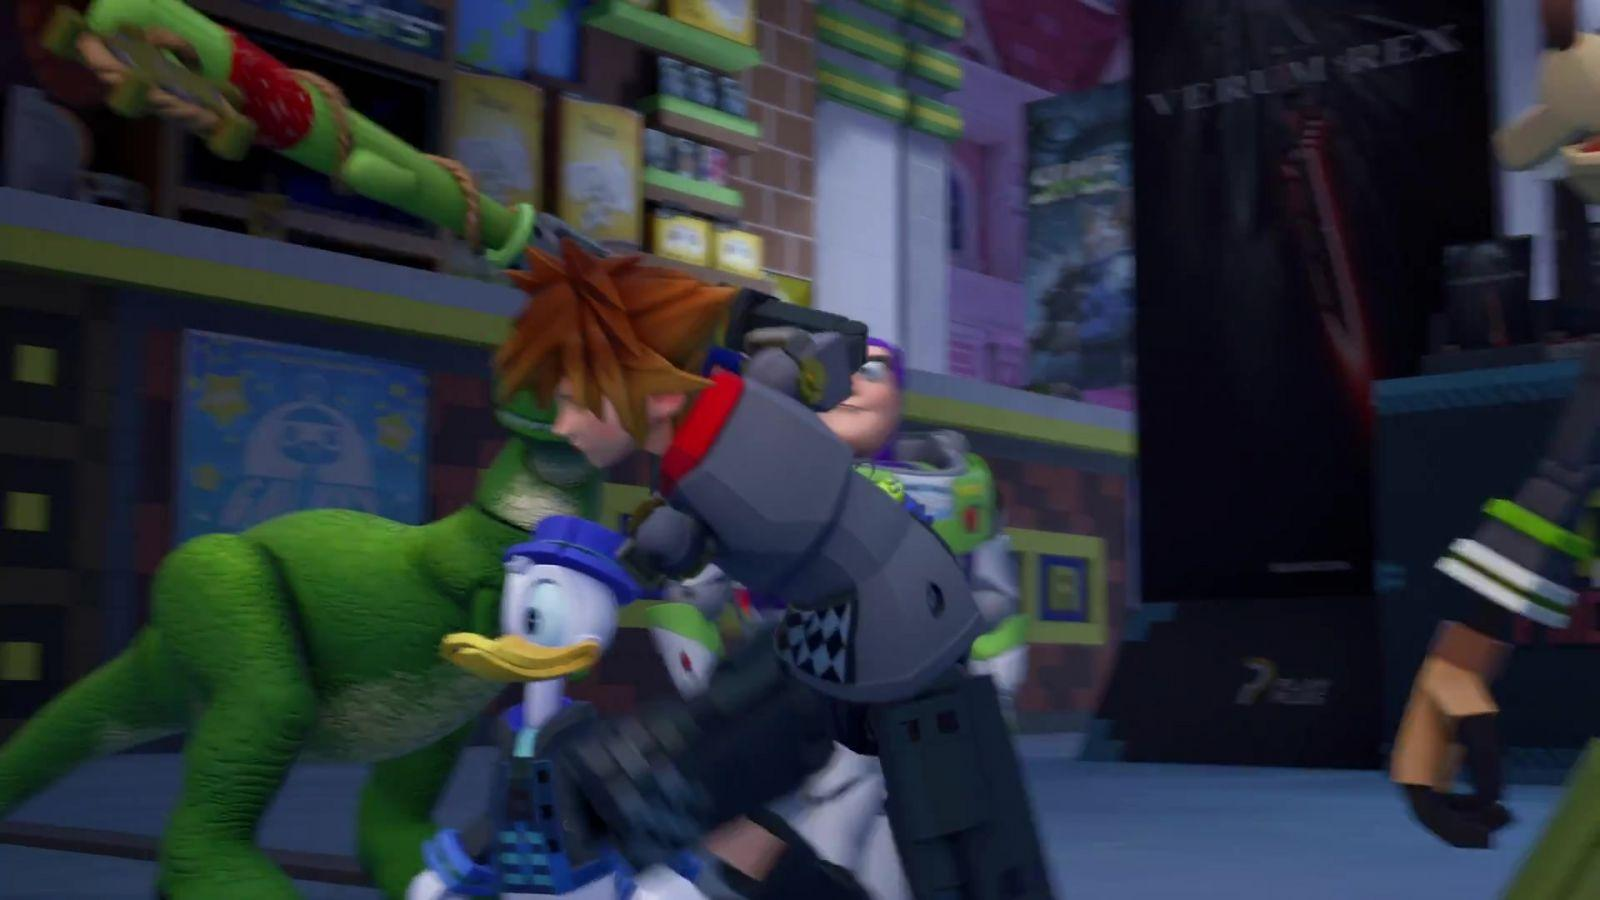 【KINGDOM HEARTS III】TGS 2018 Trailer Short Ver. 103